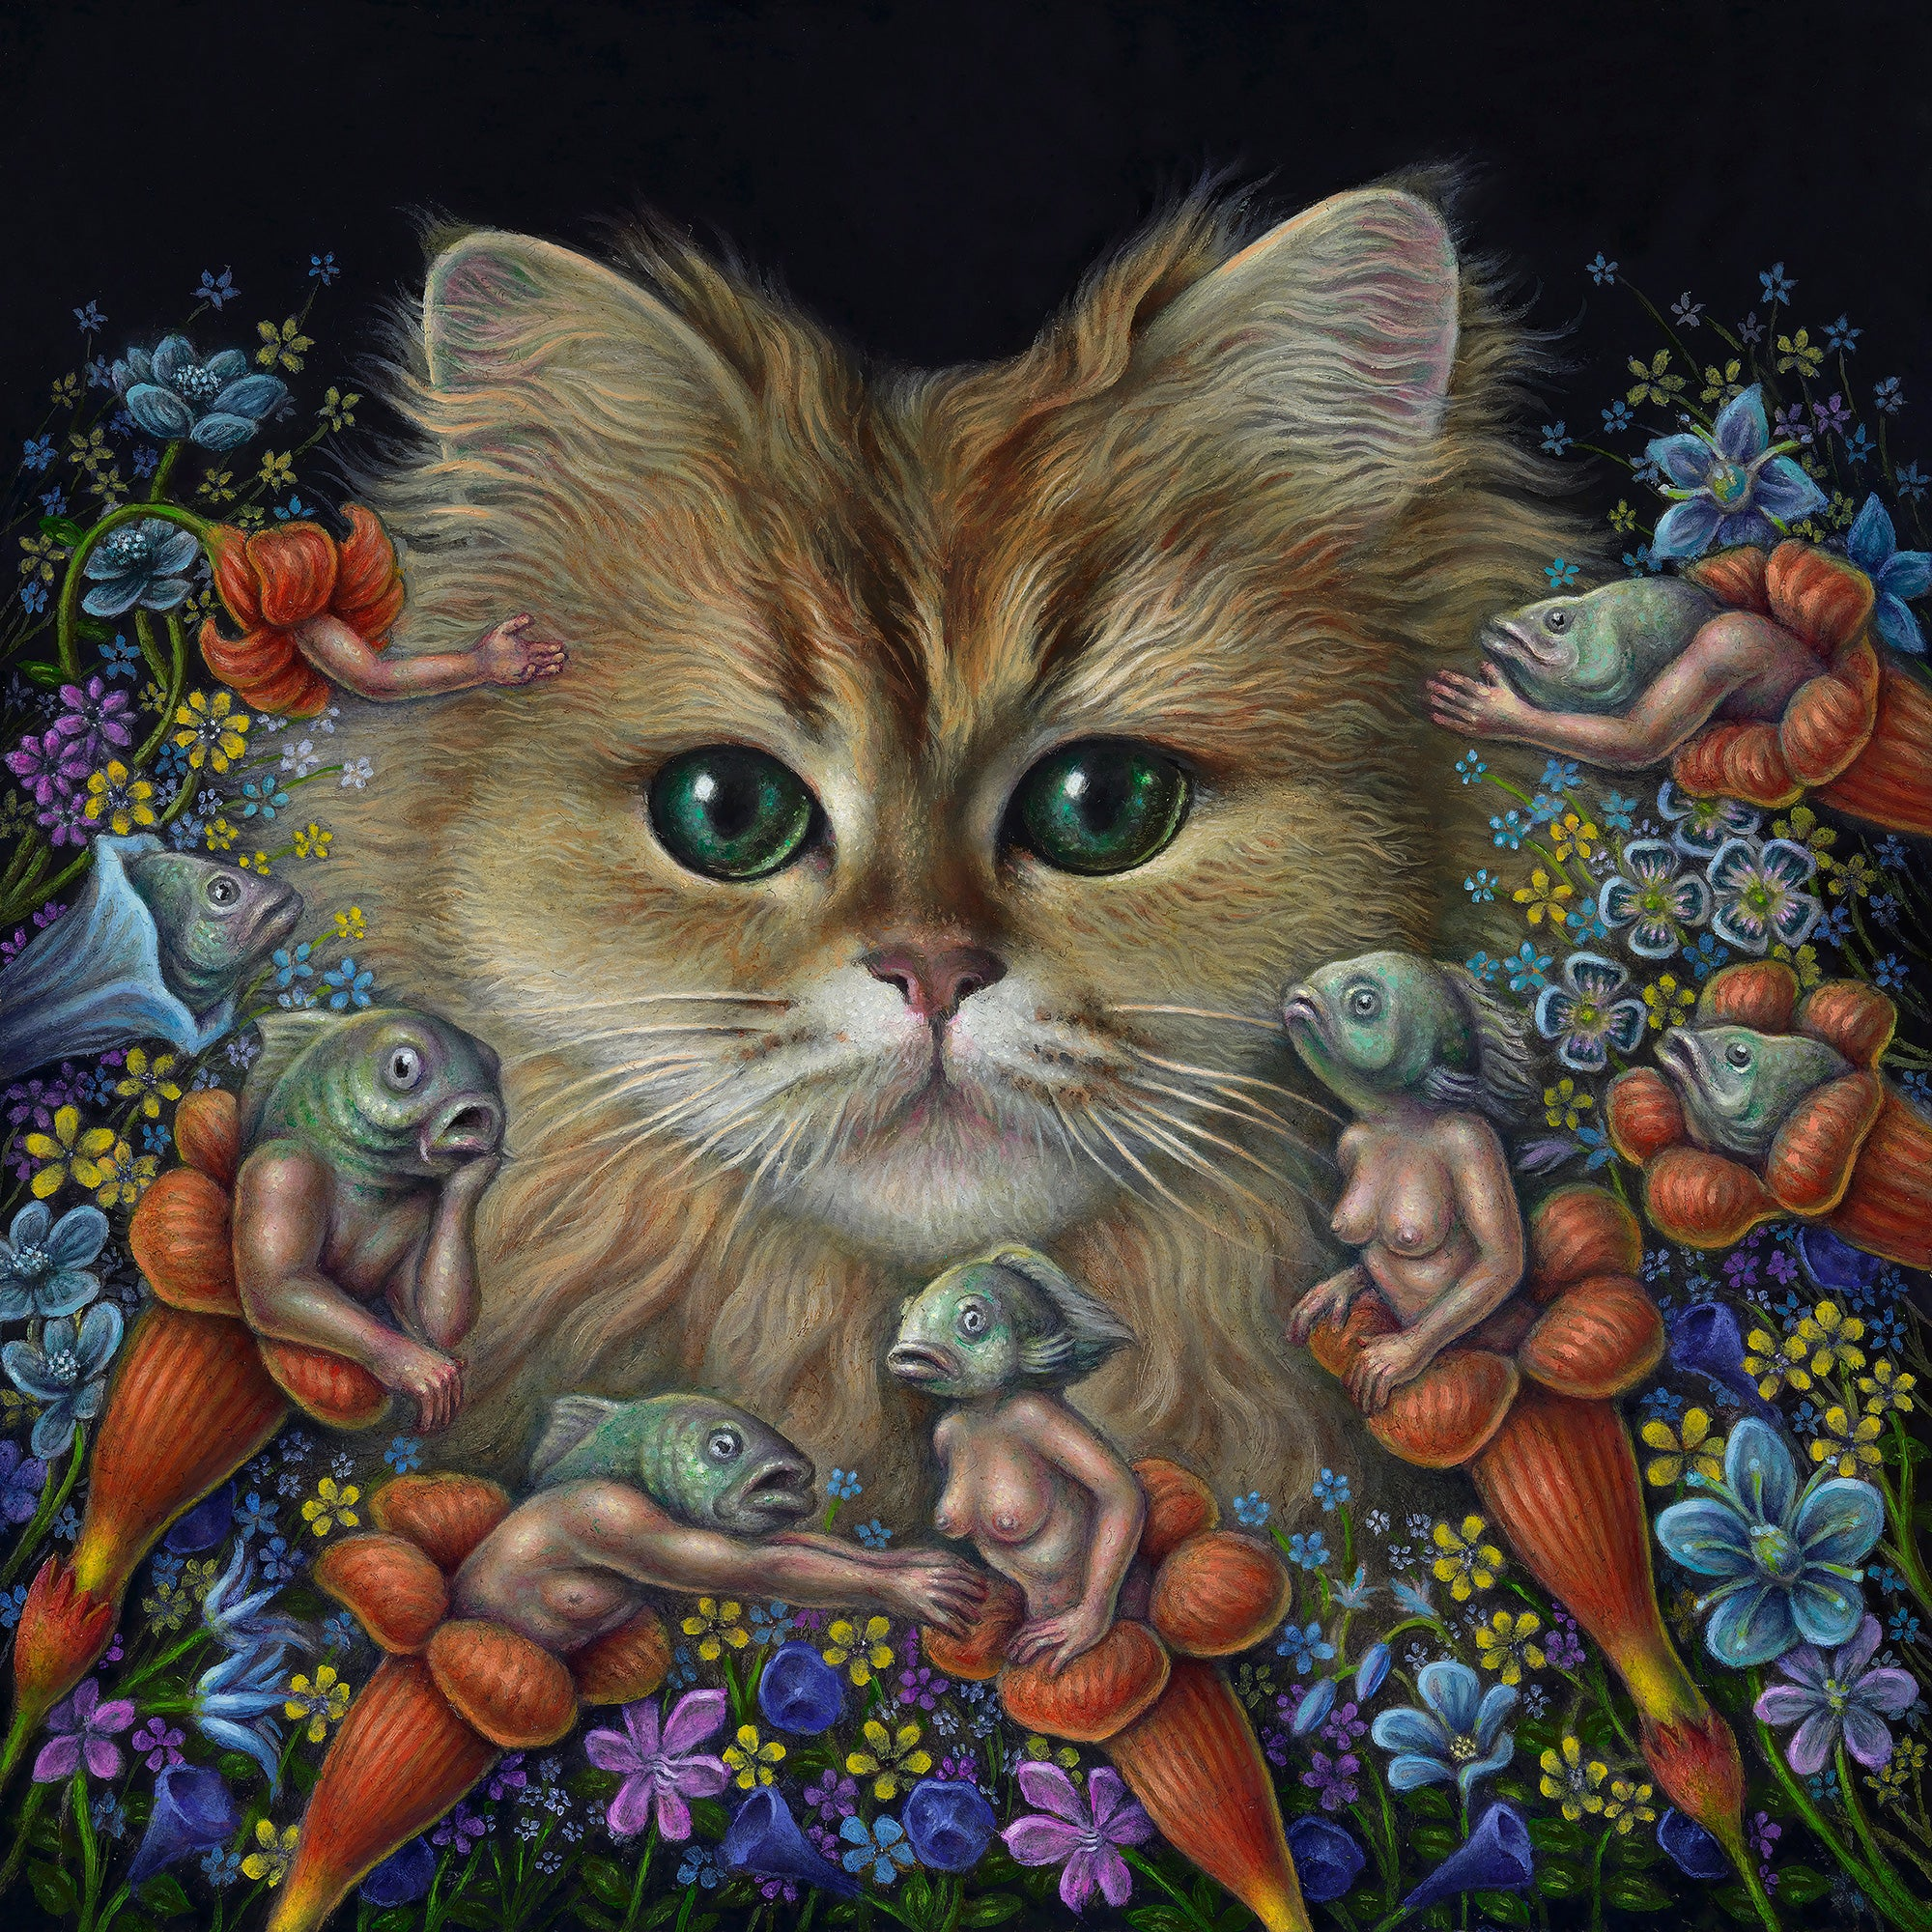 Jon Beinart - There's Something in The Milk